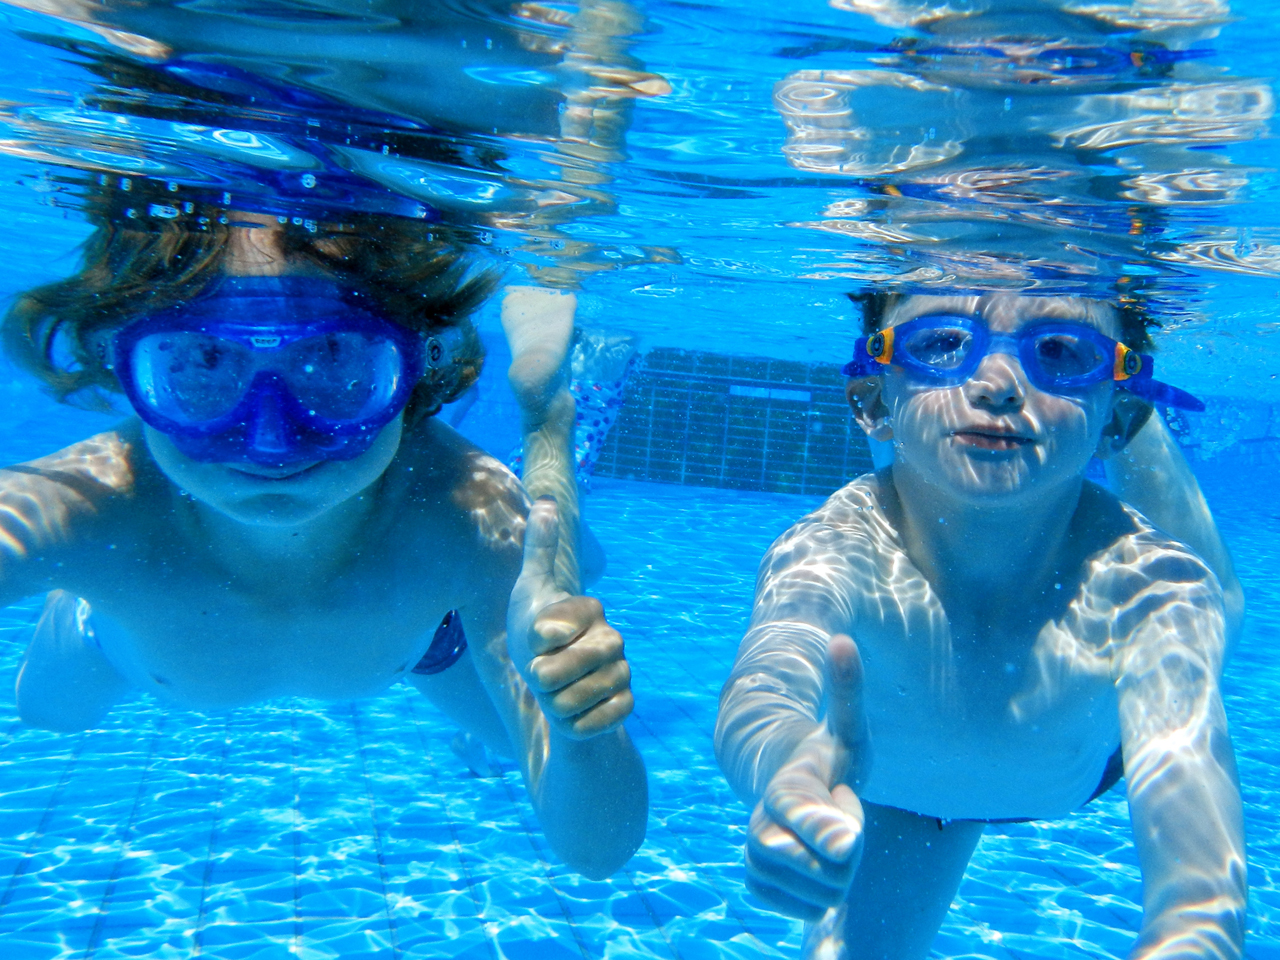 Cdc Finds Public Swimming Pools Rife With Fecal Contamination Cbs News